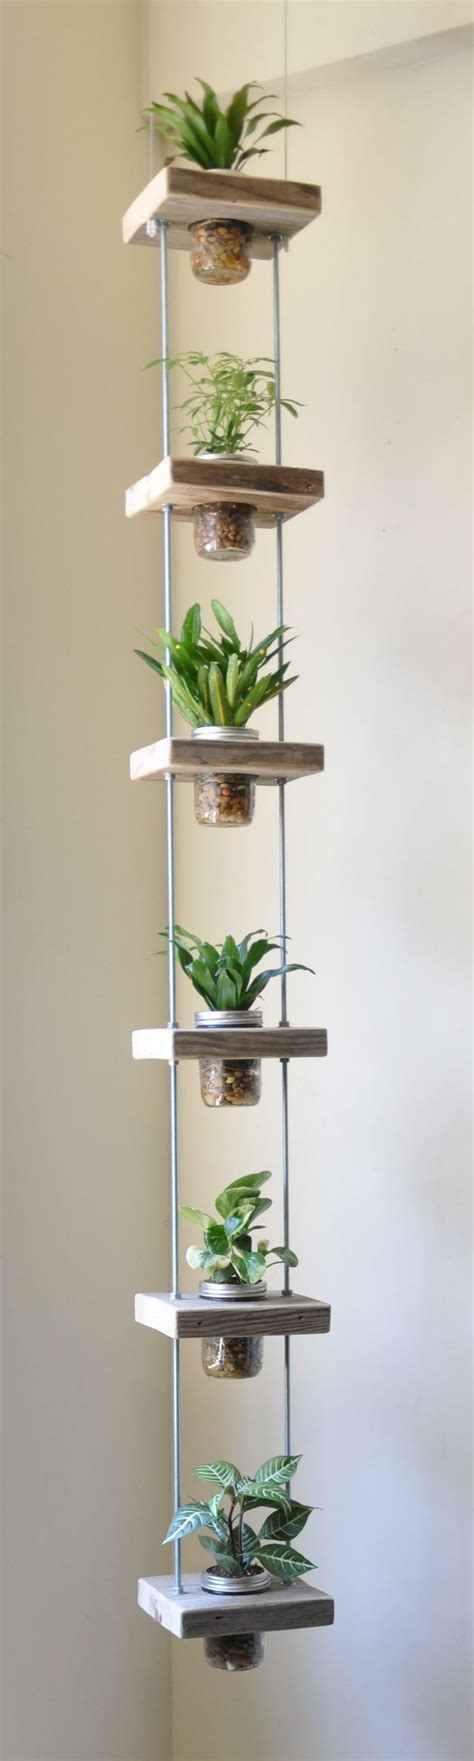 hanging herb garden indoor 25 best ideas about indoor vertical gardens on pinterest herb wall vertical wall planters